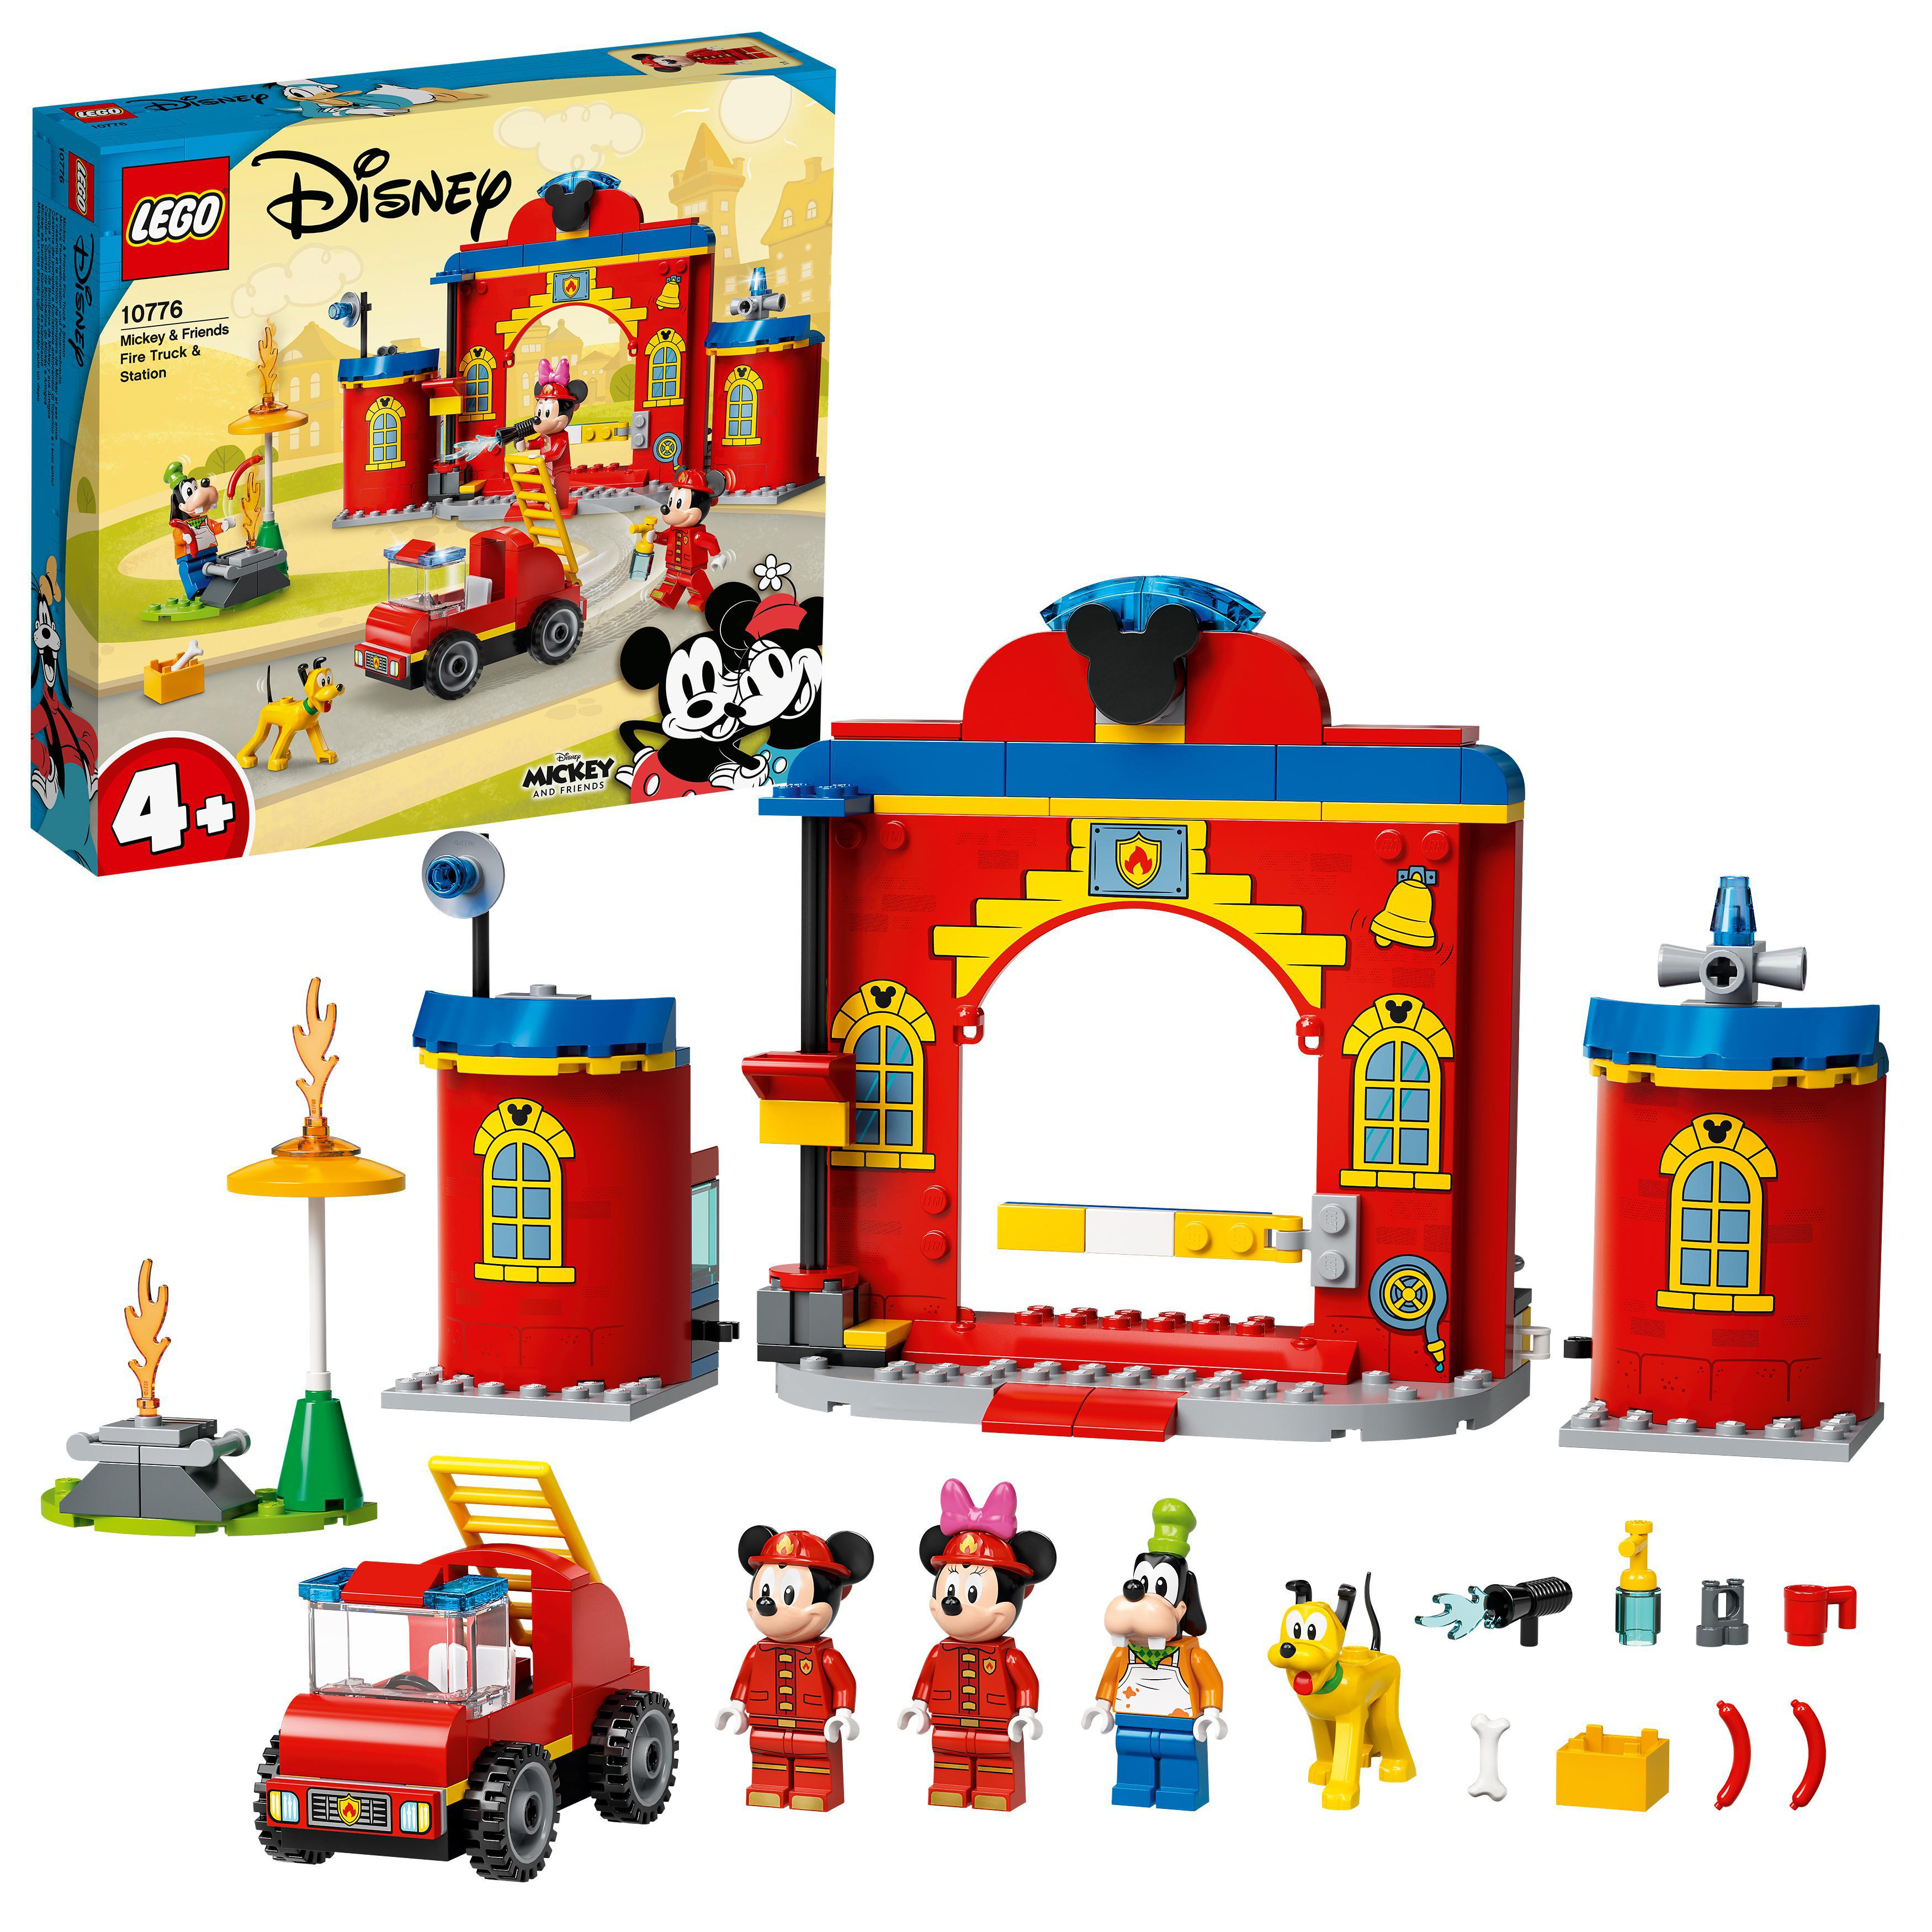 LEGO Mickey Mouse - Mickey & Friends Fire Truck & Station (10776)